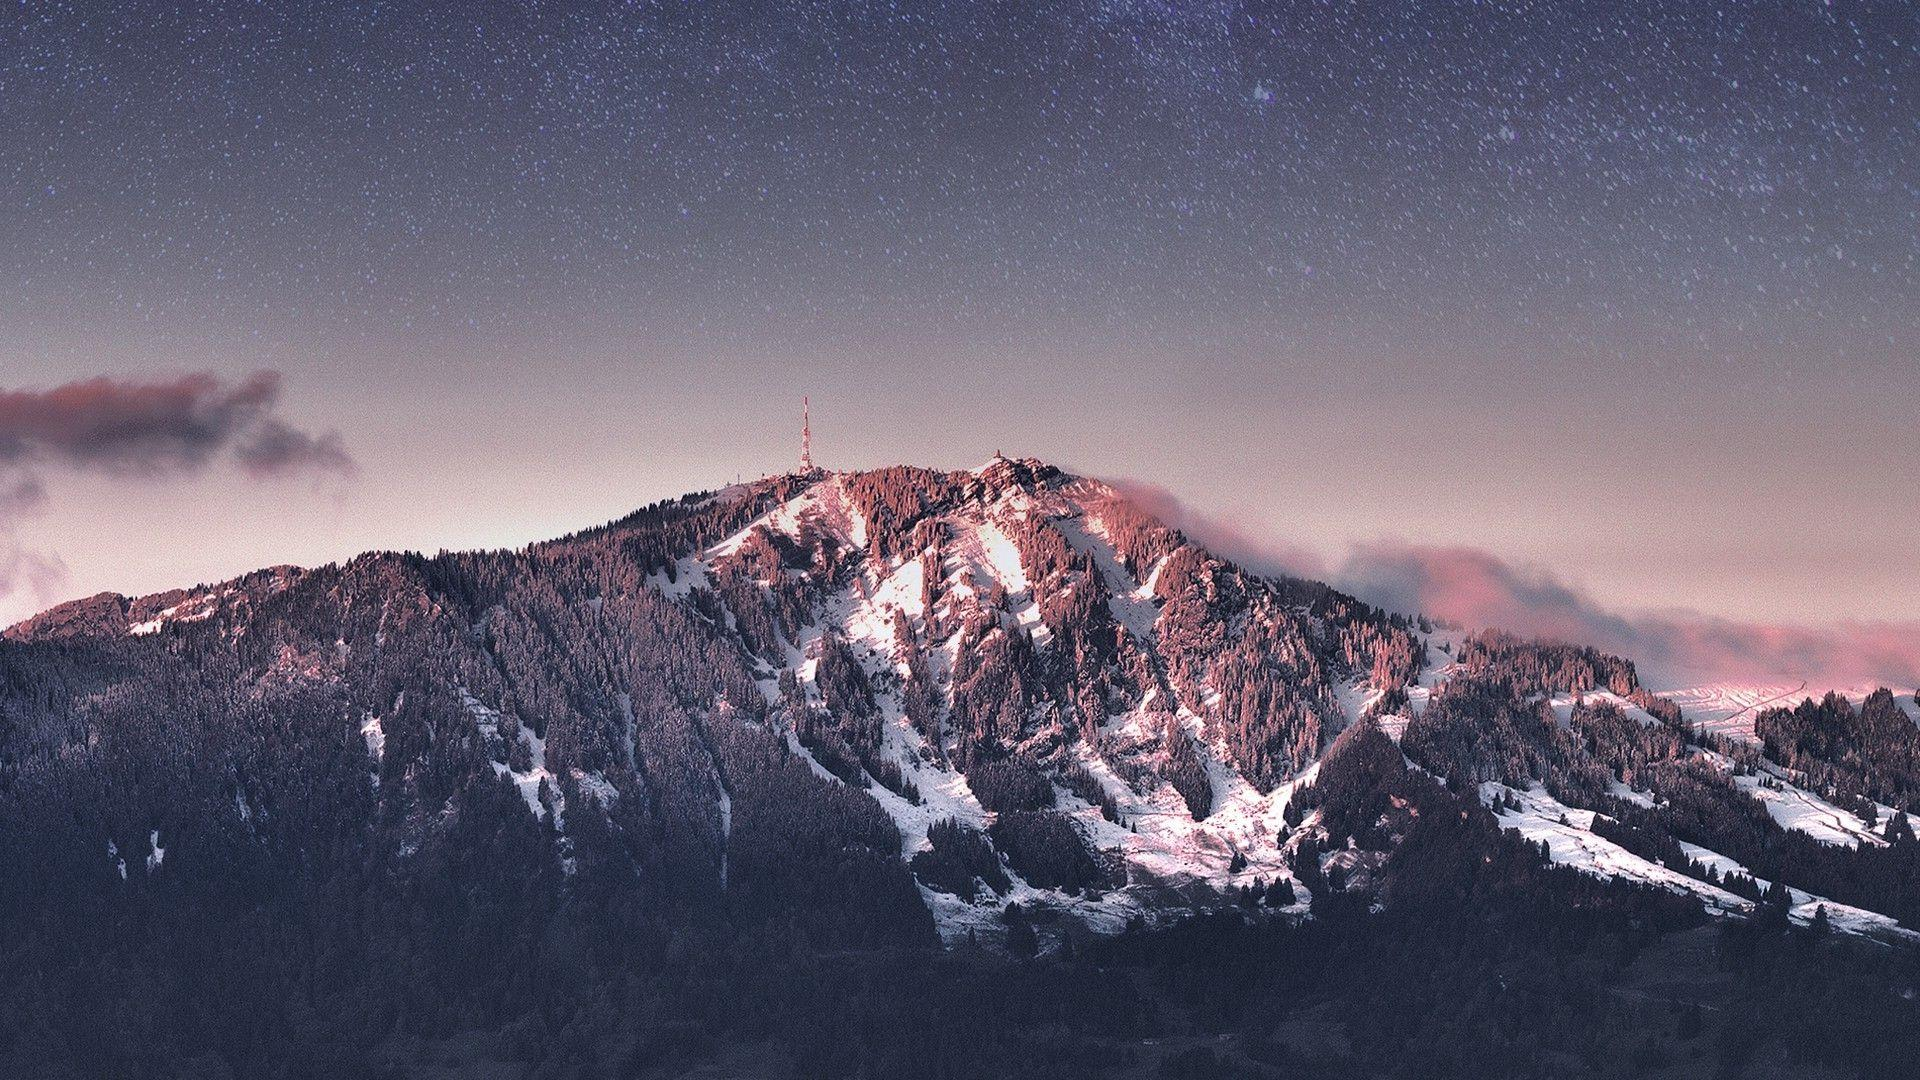 Night Mountain Wallpapers Wallpaper Cave